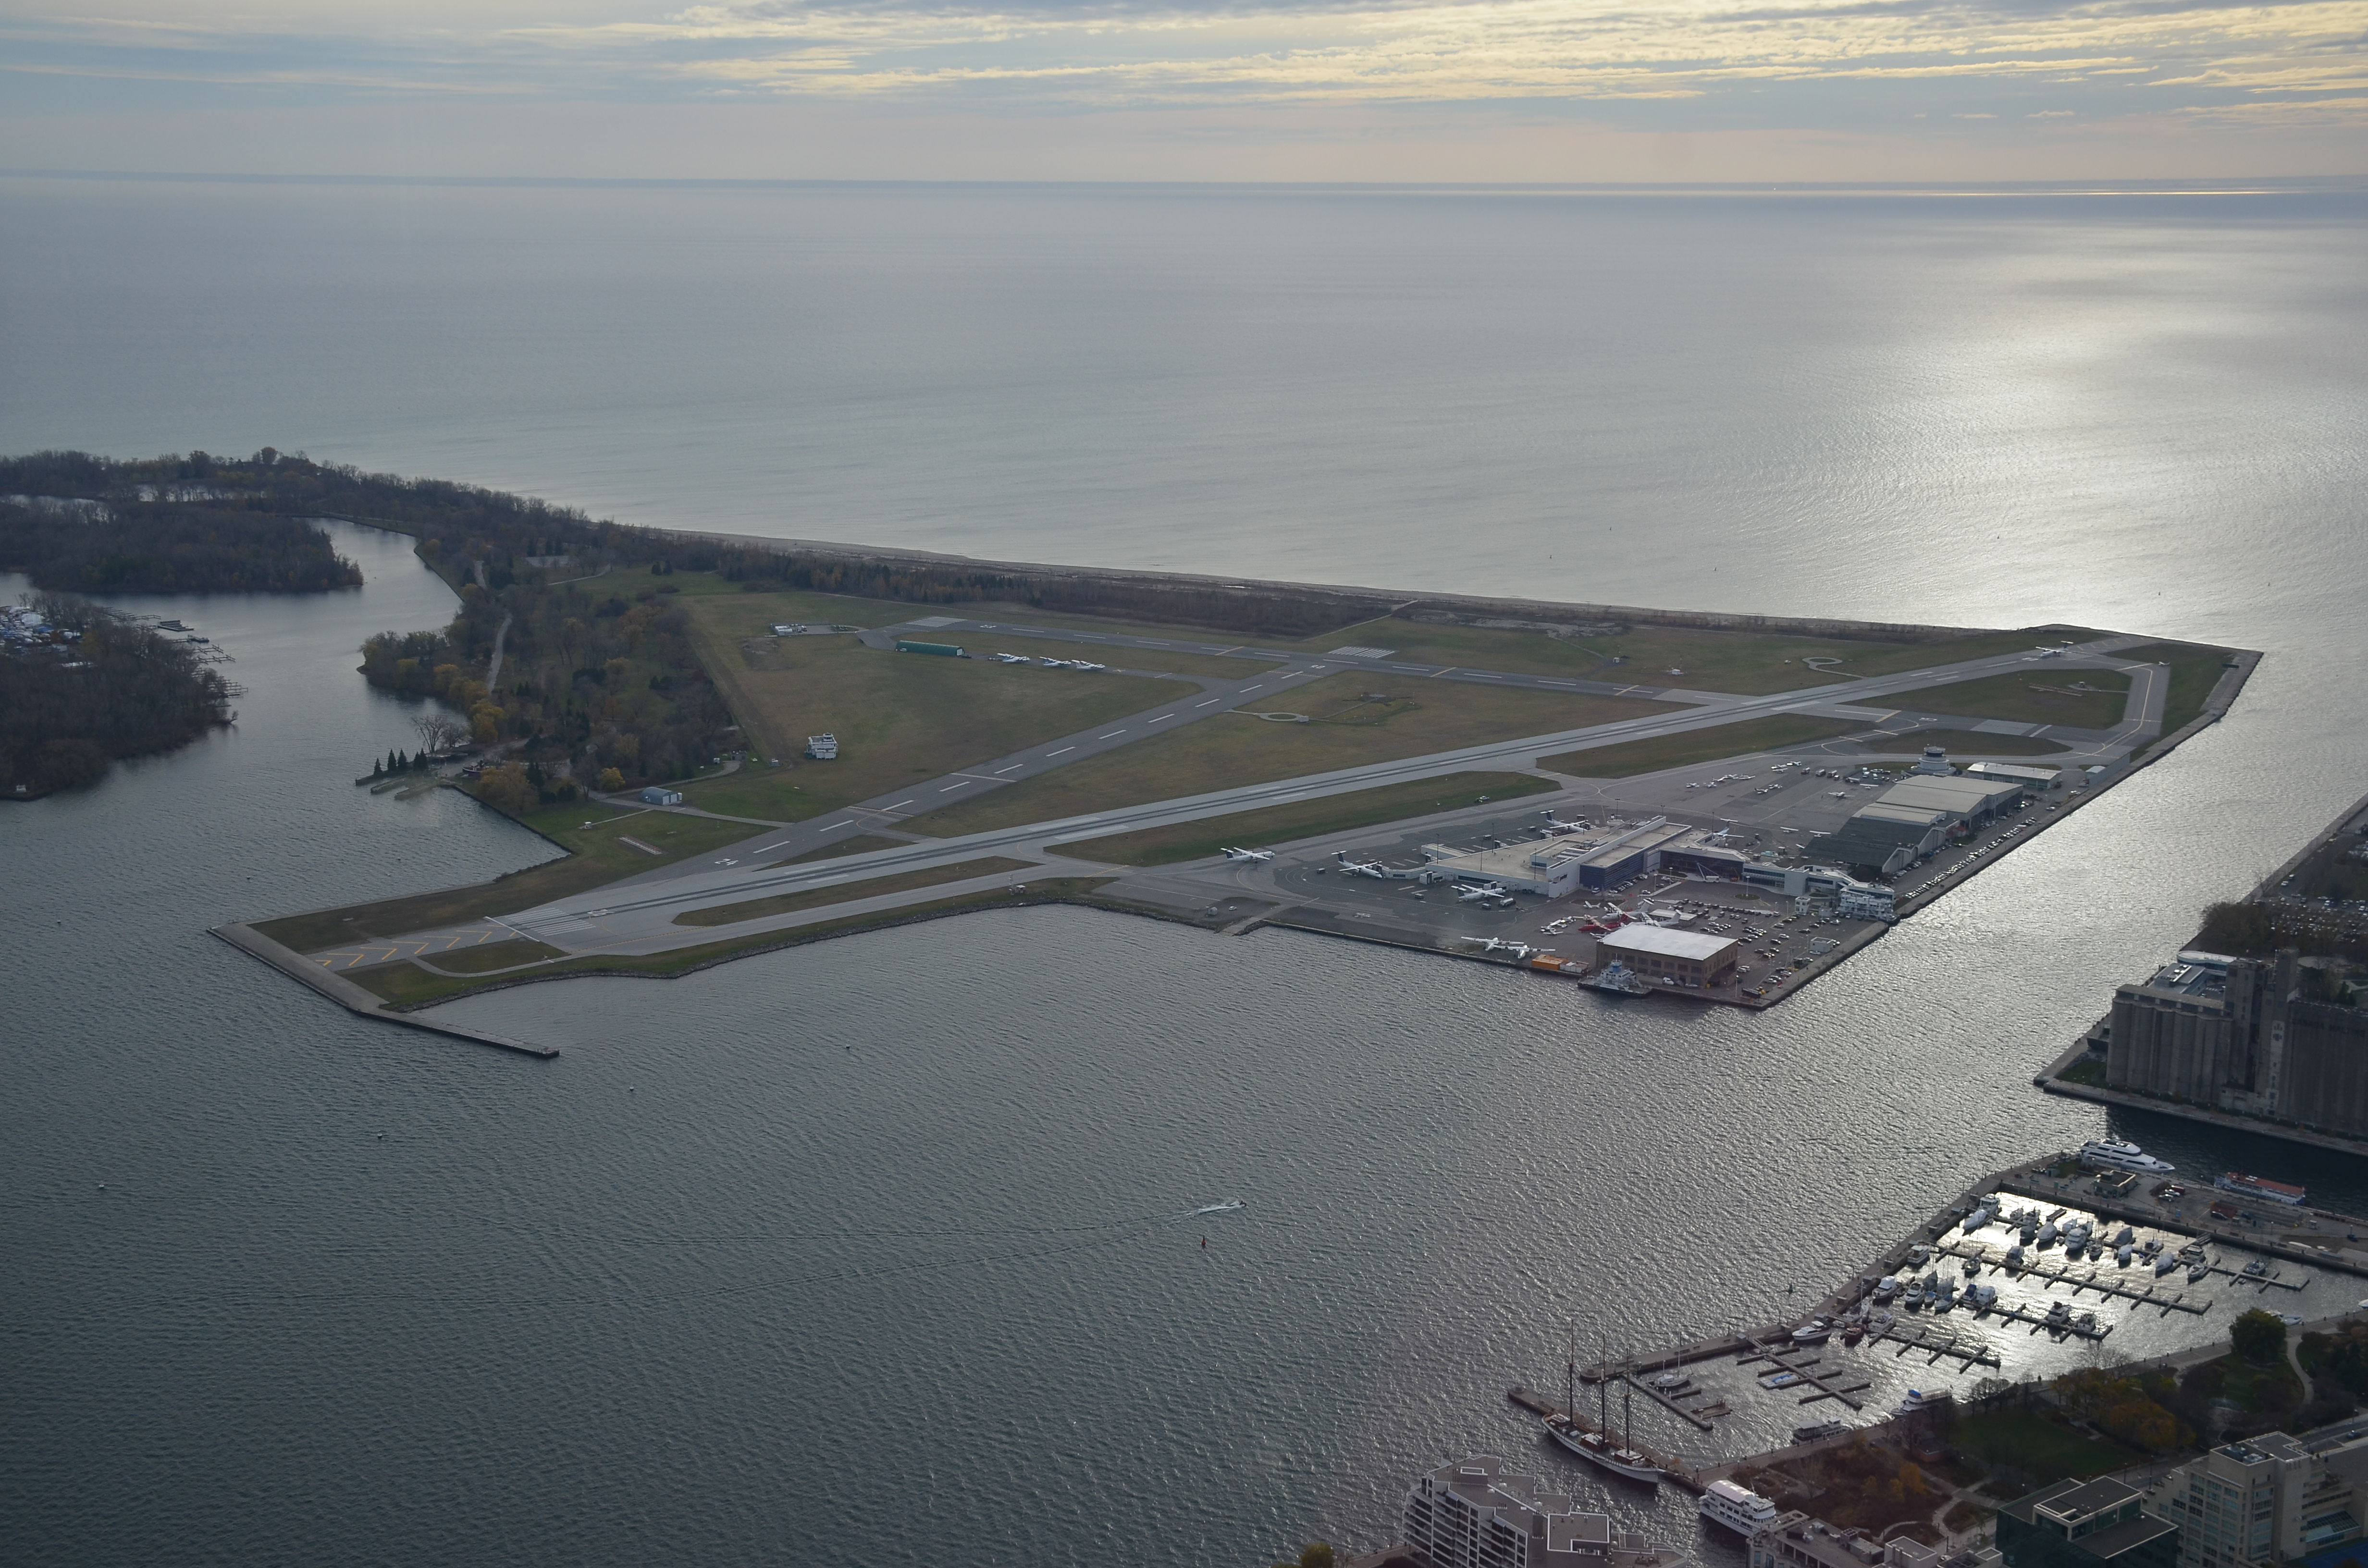 The short runway of Billy Bishop/ Toronto City airport